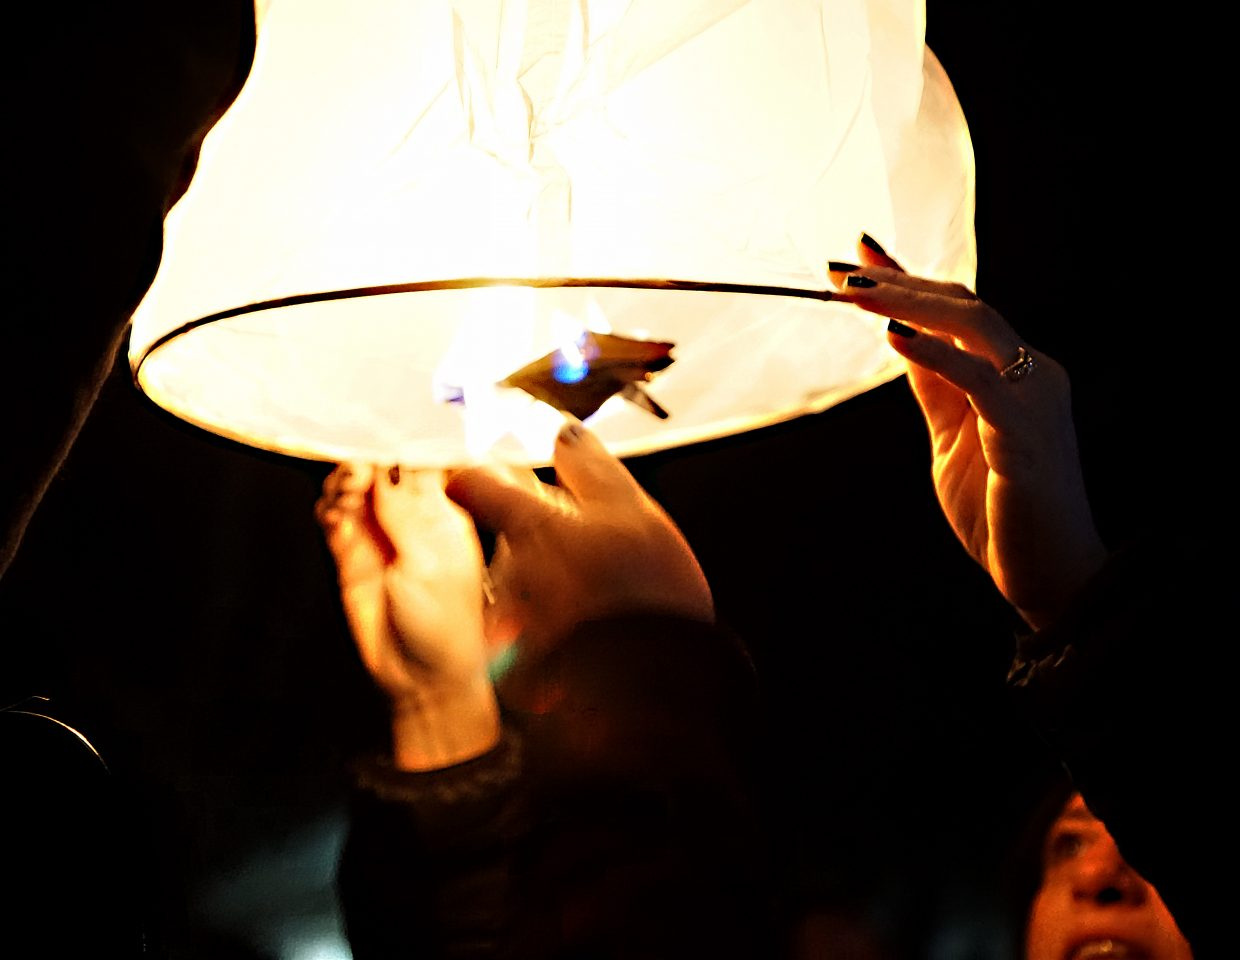 The four corners of the lantern's wick are lit.